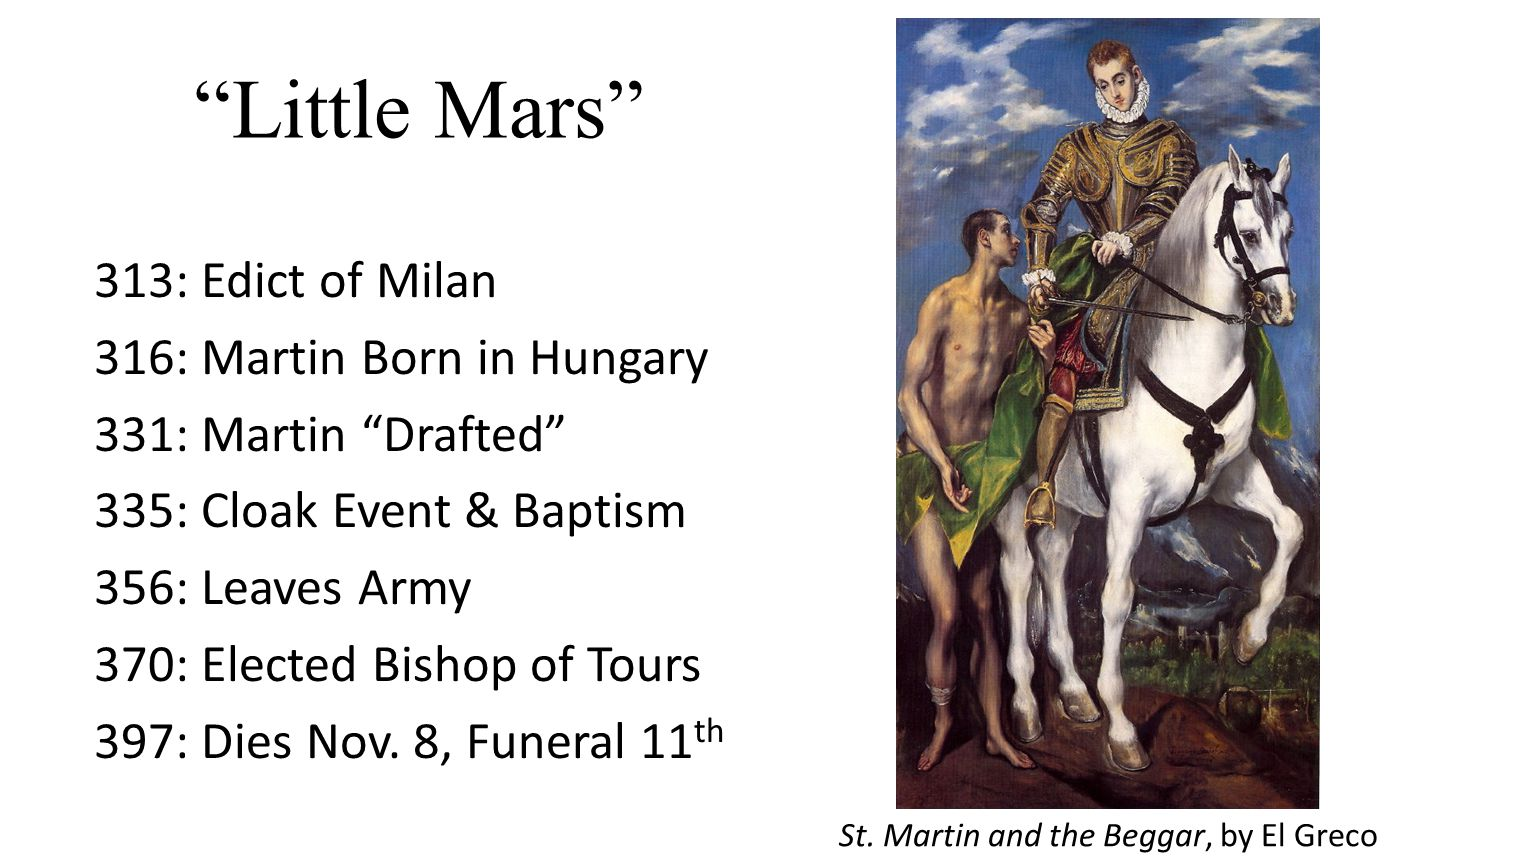 Little Mars 313: Edict of Milan 316: Martin Born in Hungary 331: Martin Drafted 335: Cloak Event & Baptism 356: Leaves Army 370: Elected Bishop of Tours 397: Dies Nov.